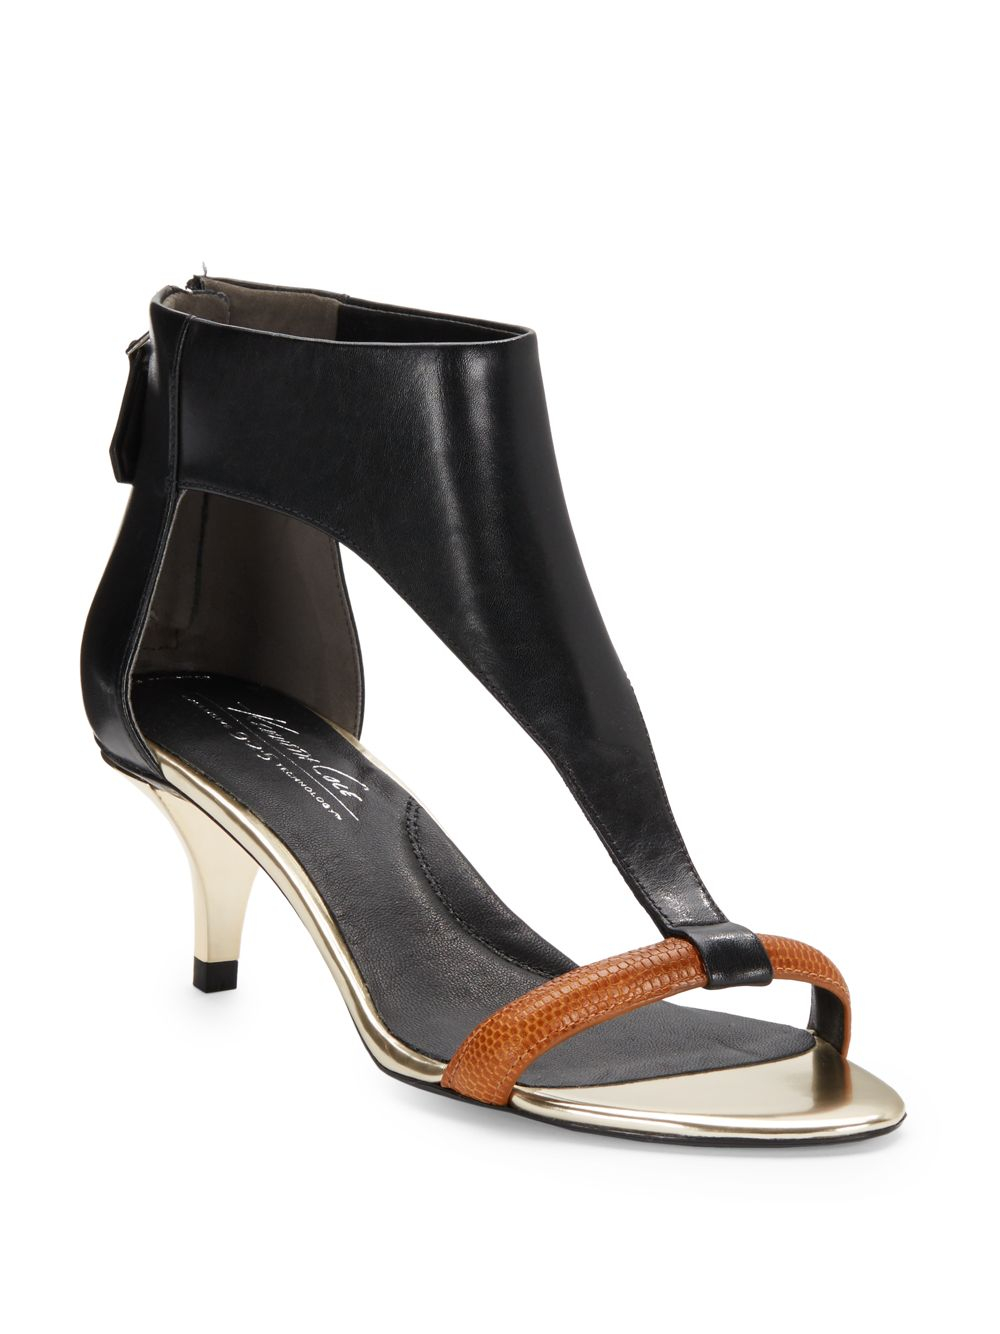 Kenneth cole Havemeyer Leather Kitten-Heel Sandals in Black | Lyst